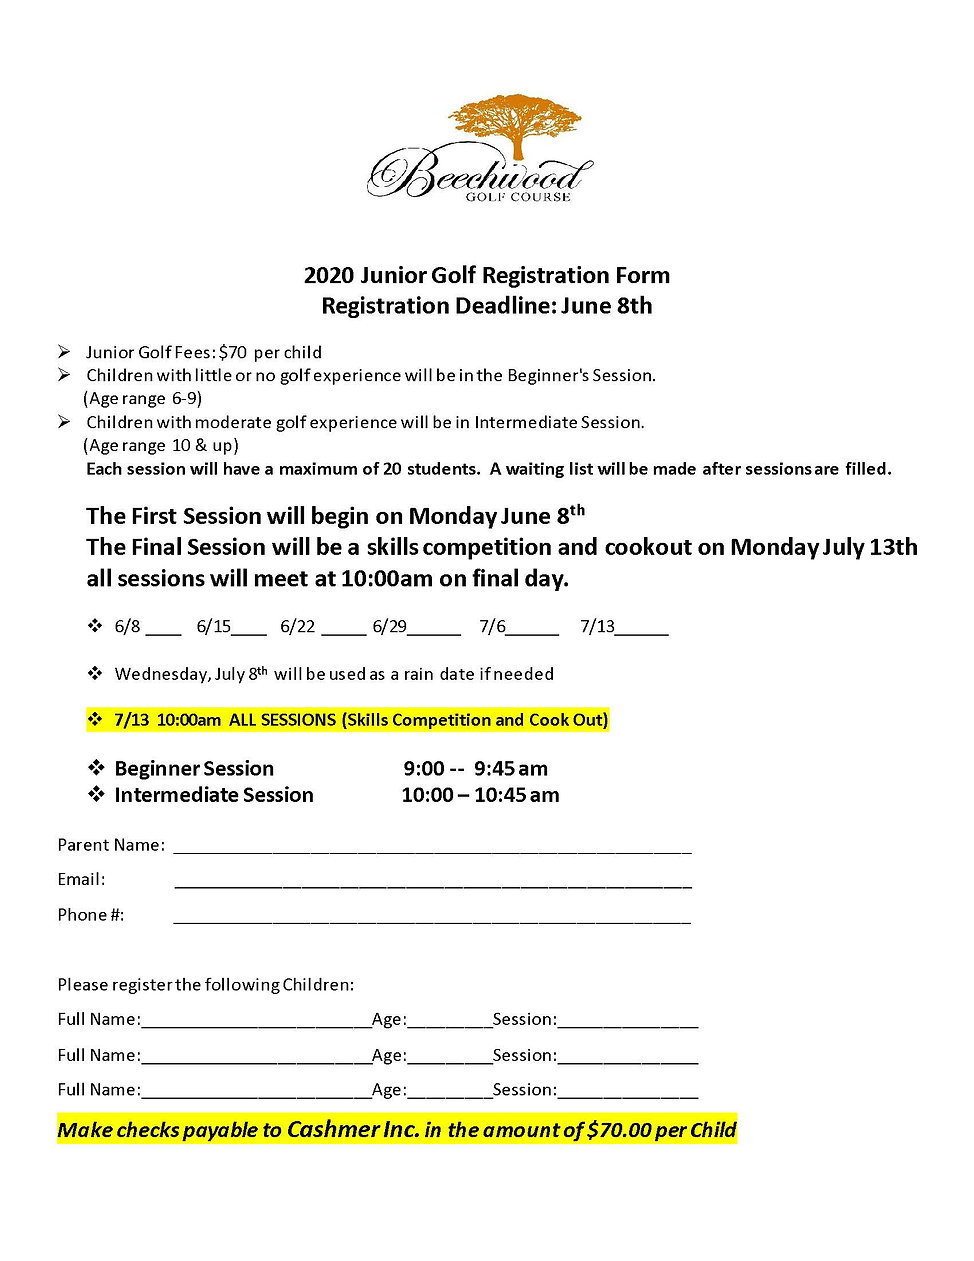 Junior Golf Registration Form 2020.jpg